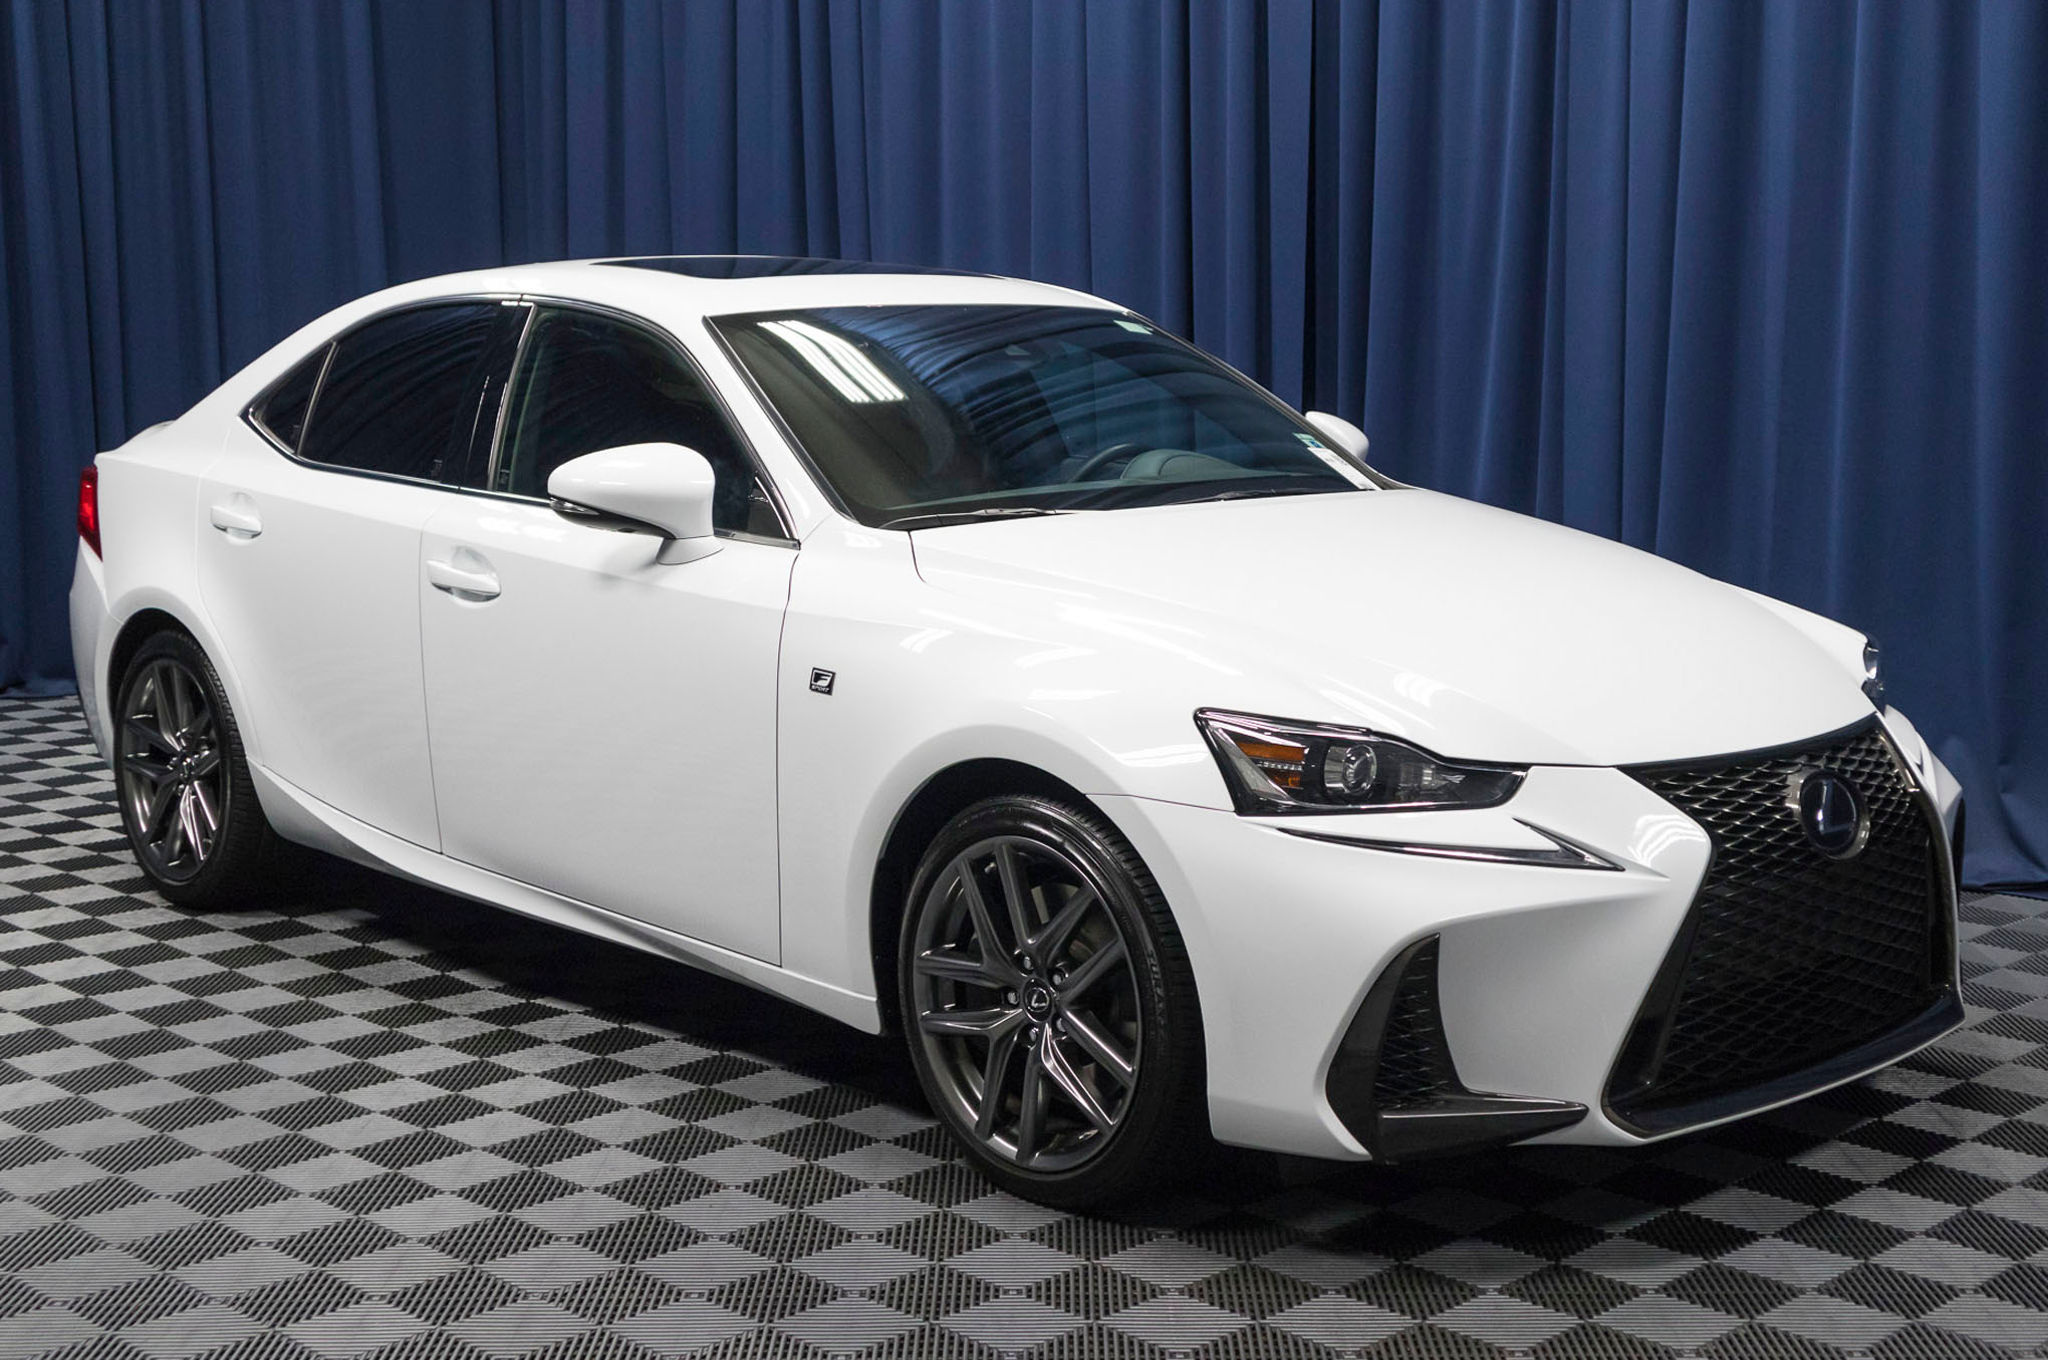 f incentive current lexus for regency sport home specials sale may